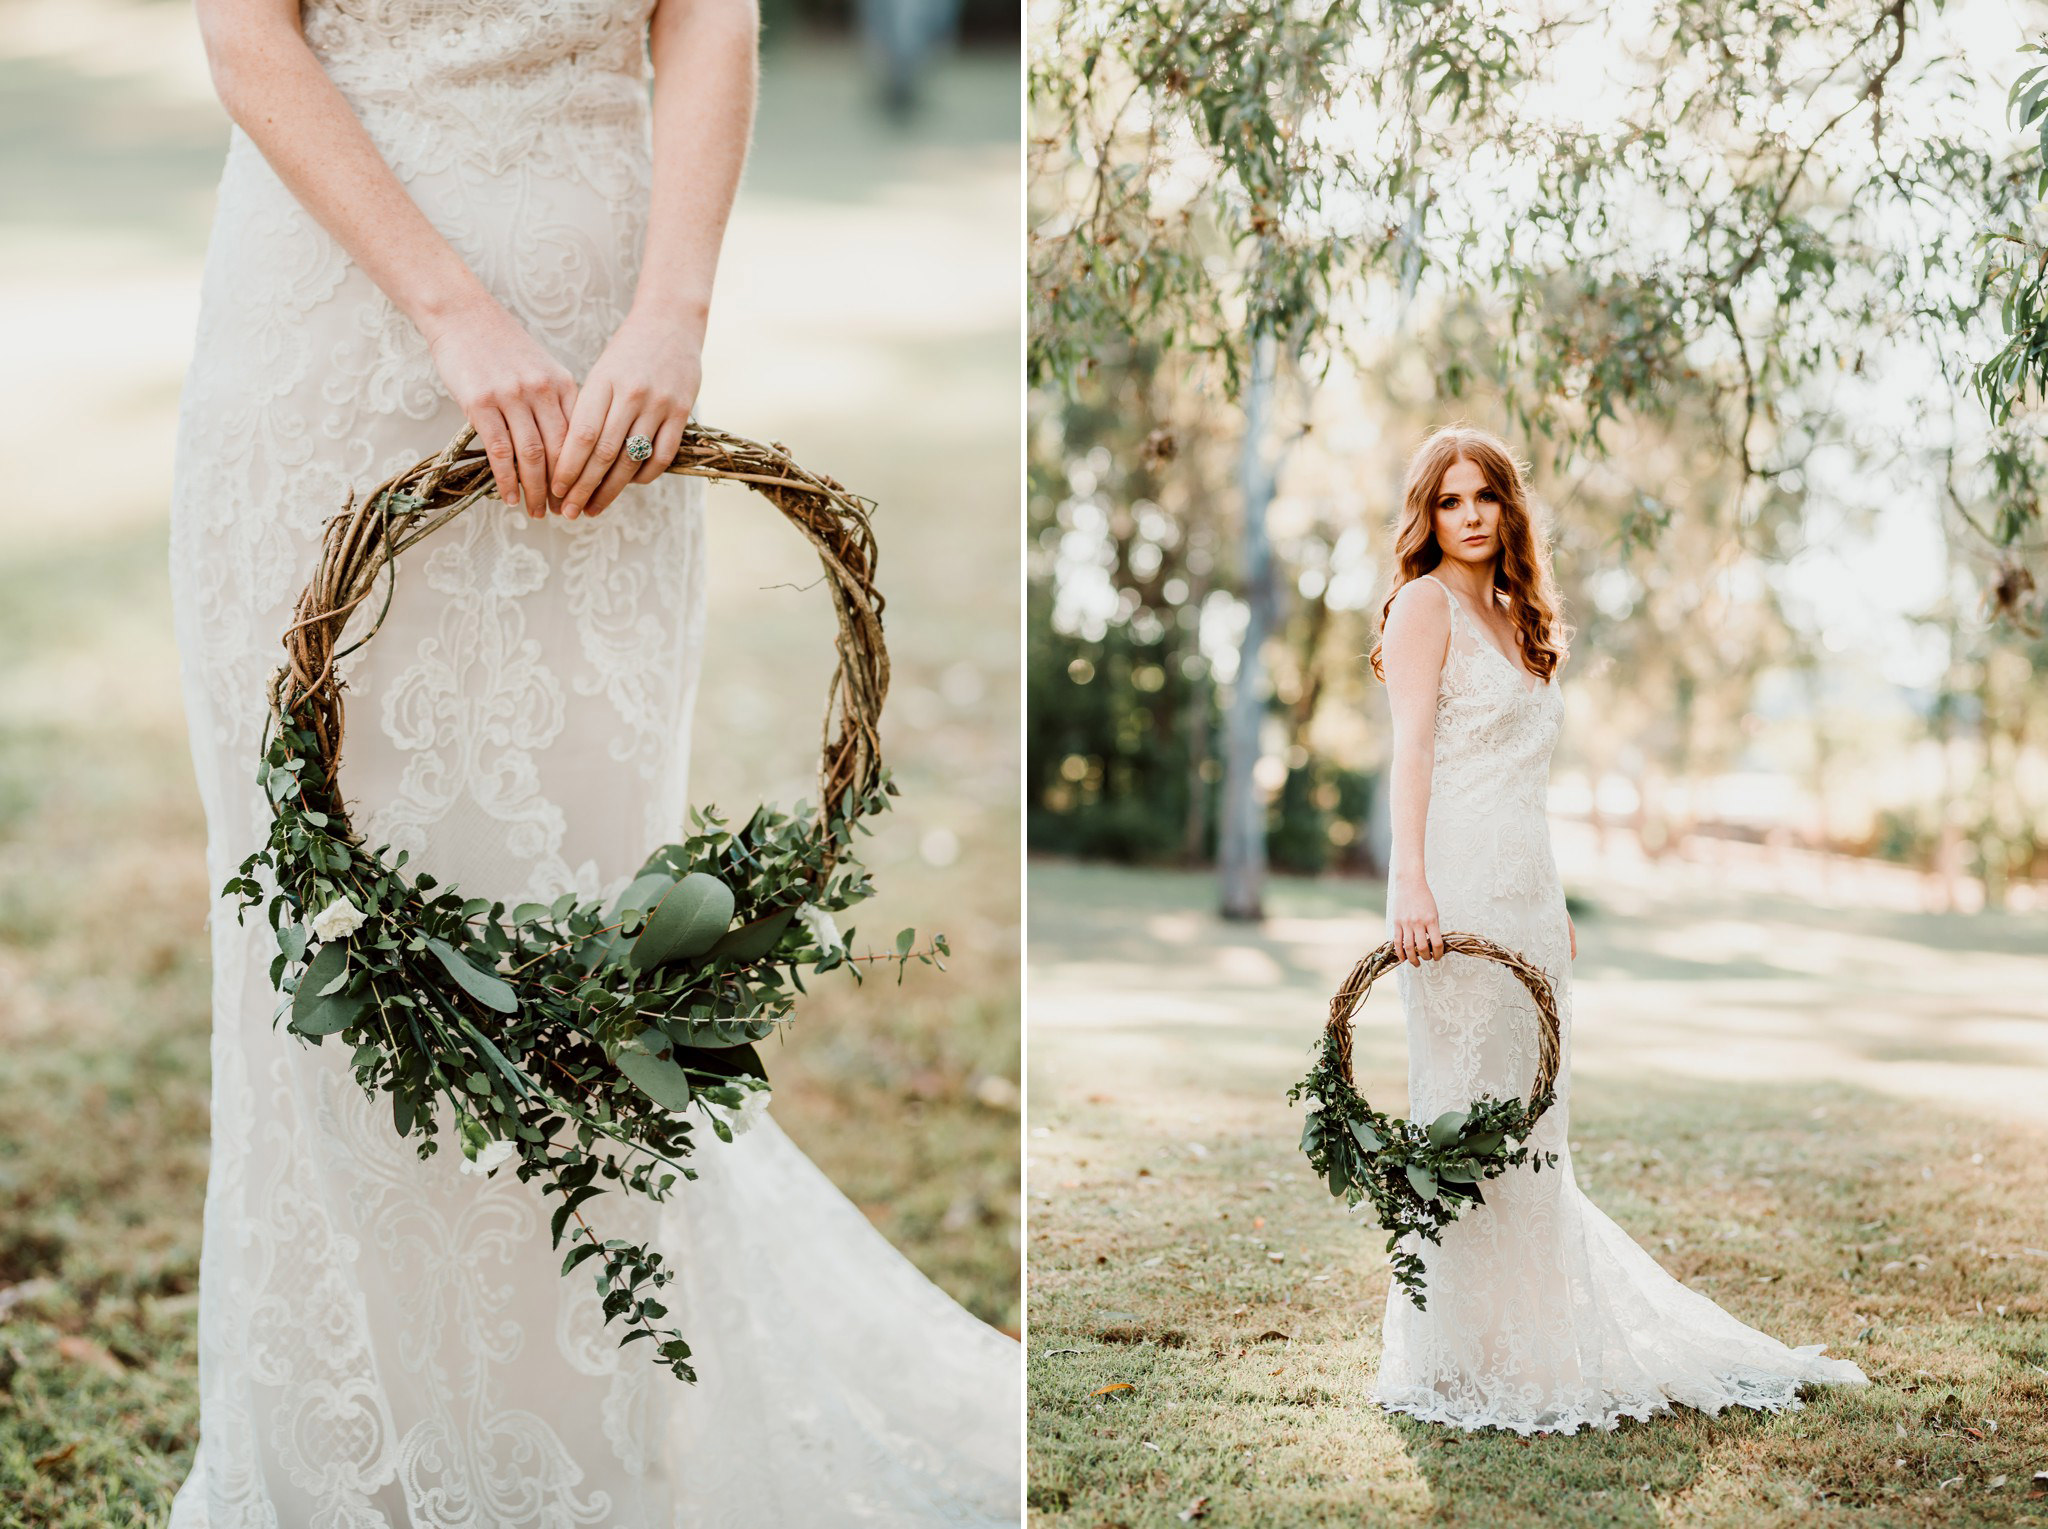 Bride with a wreath of flowers